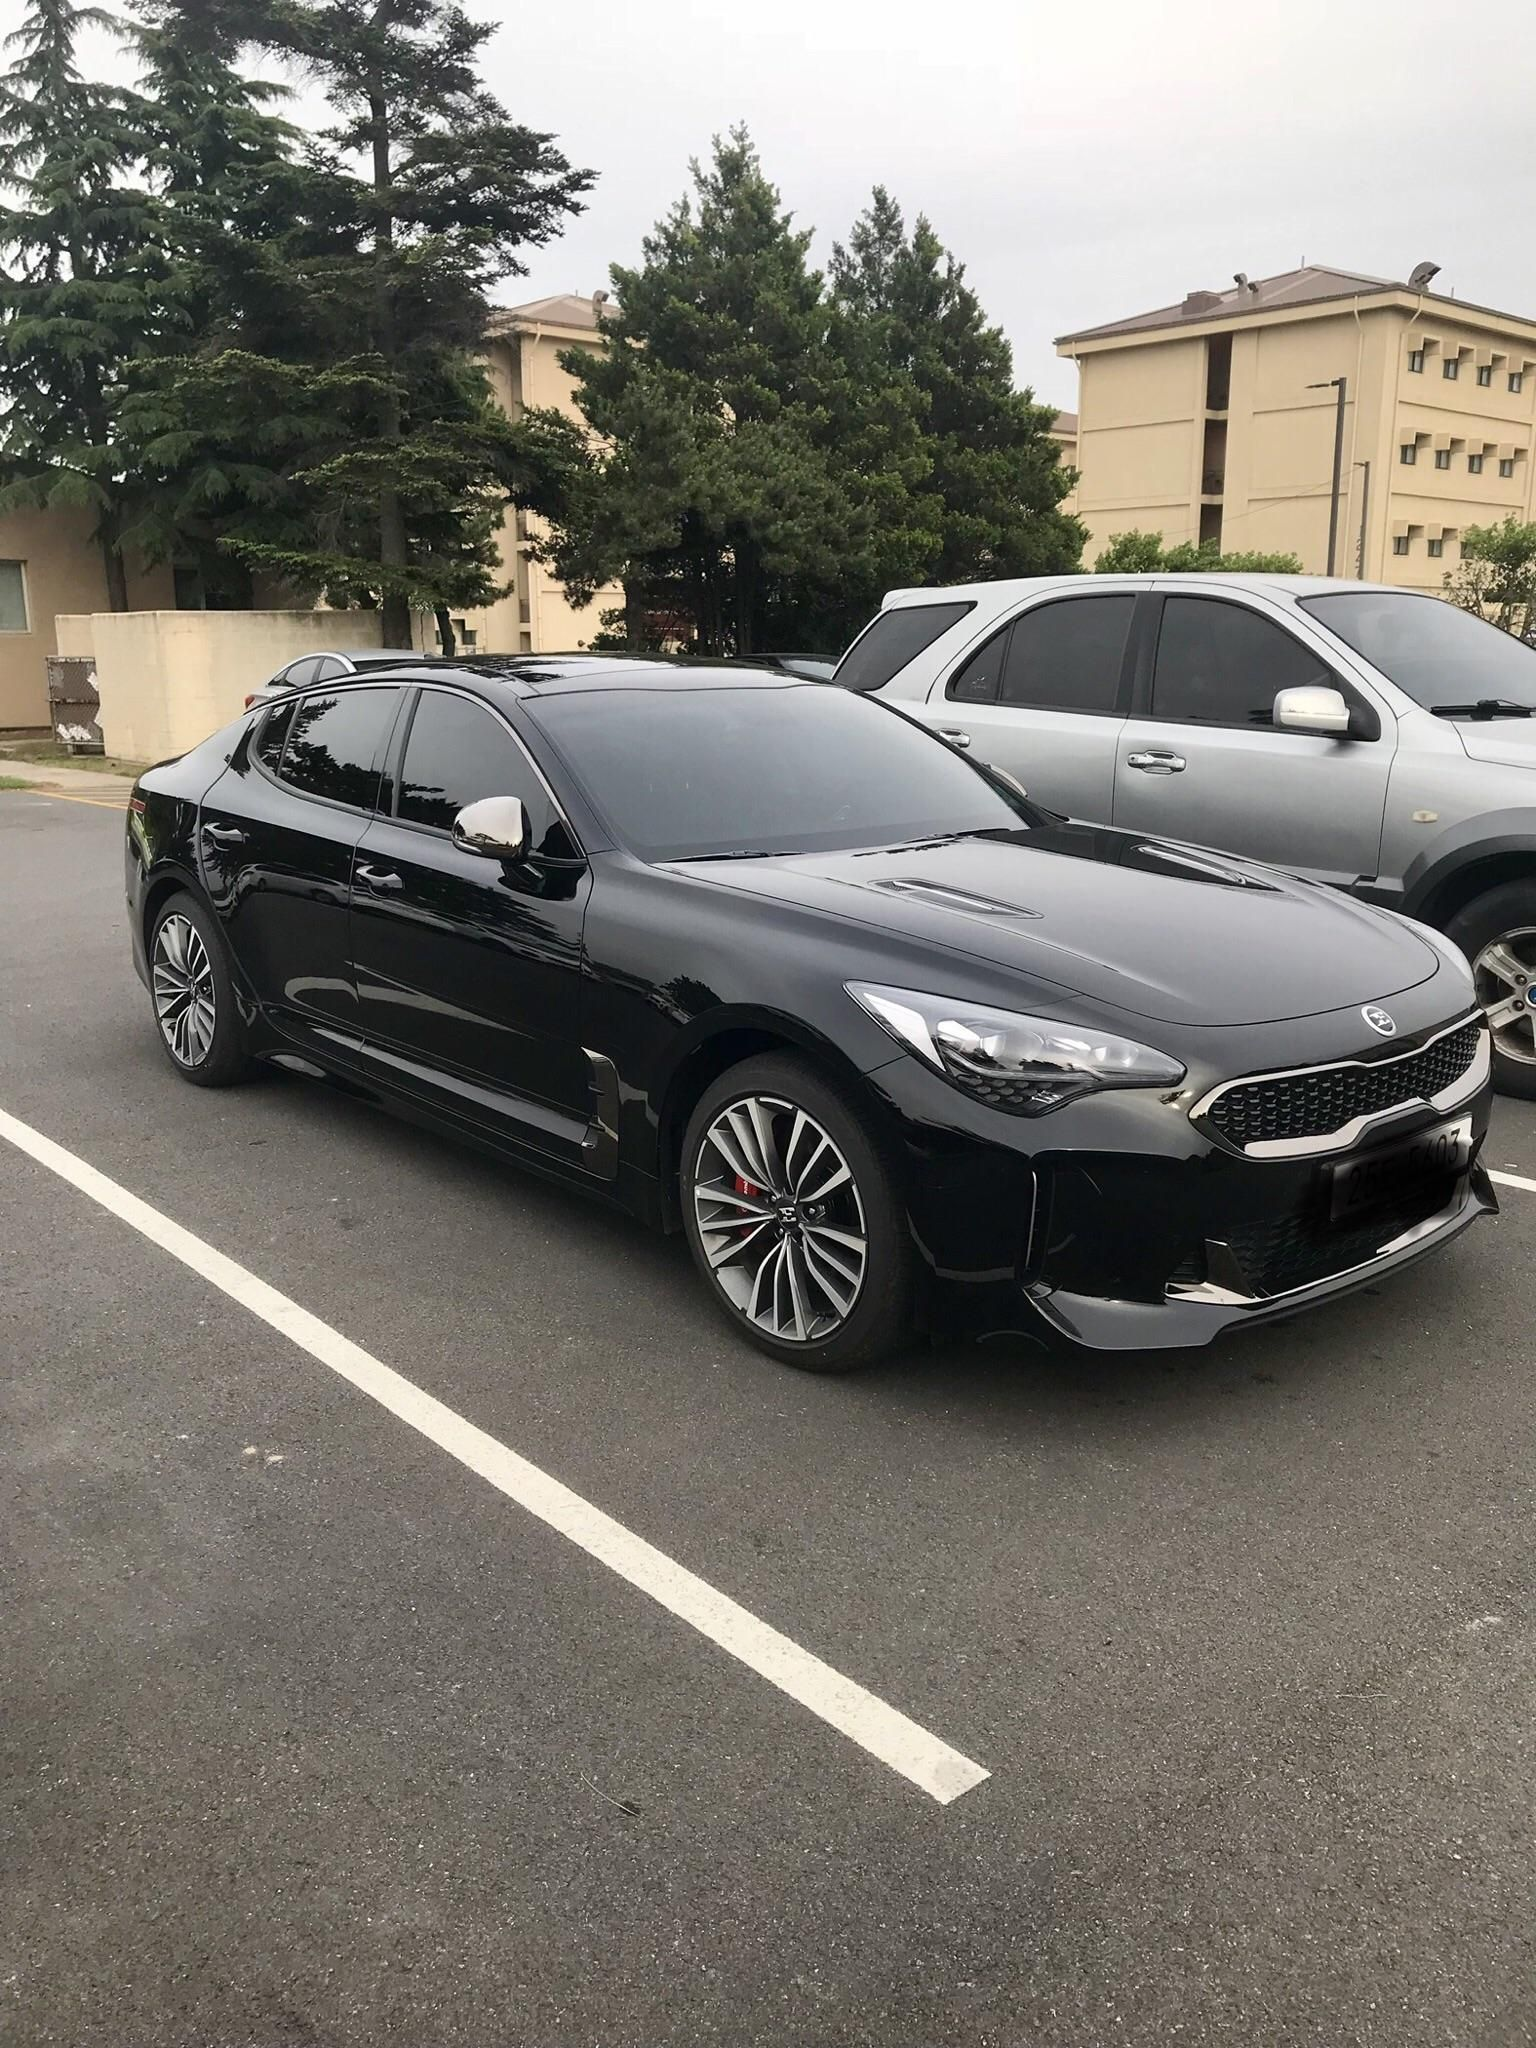 Saw A Kia Stinger In The Wild Black With Graphite Accents Clean Looking Car All Around Kia Stinger Sedan Cars Dream Cars